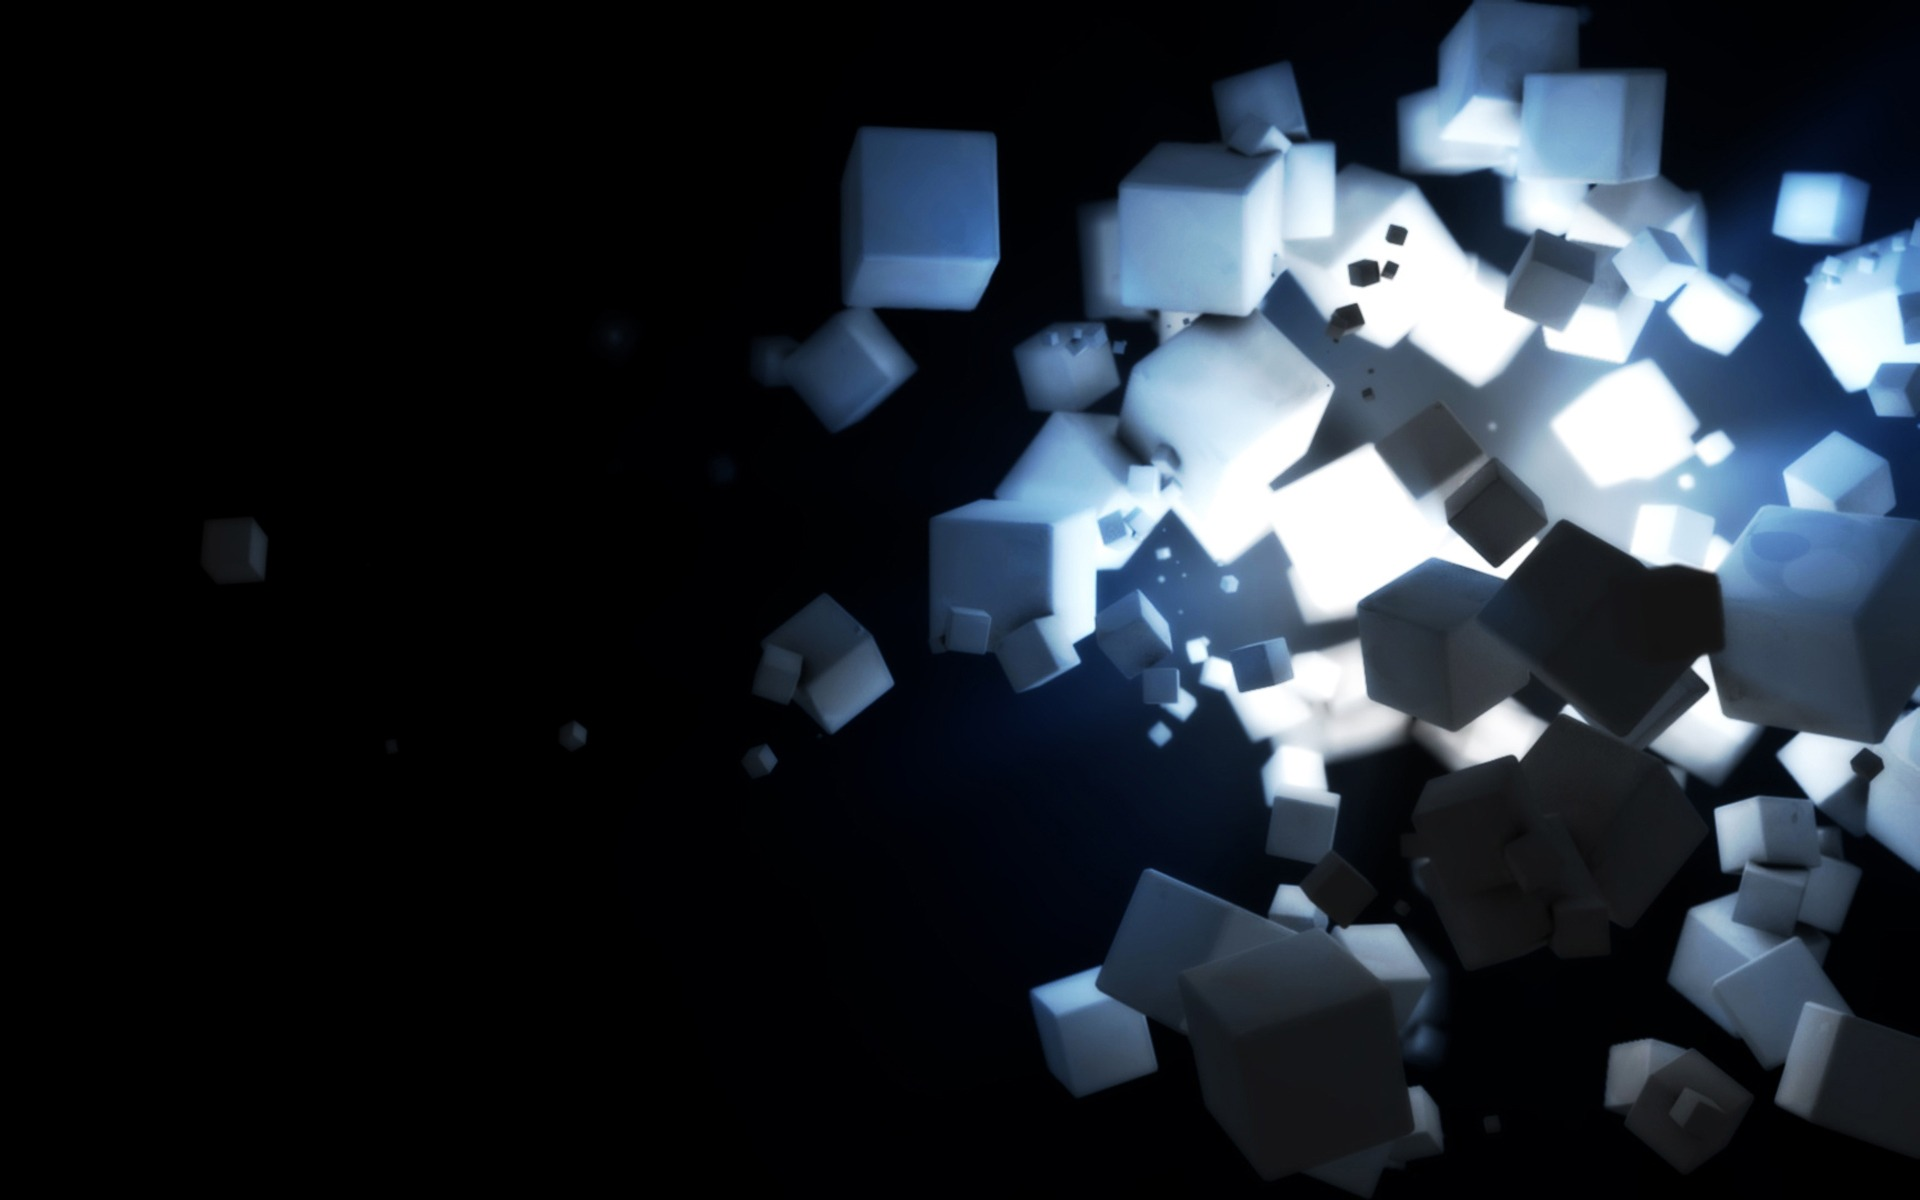 cubes wallpaper 3d models 3d wallpapers in jpg format for free download